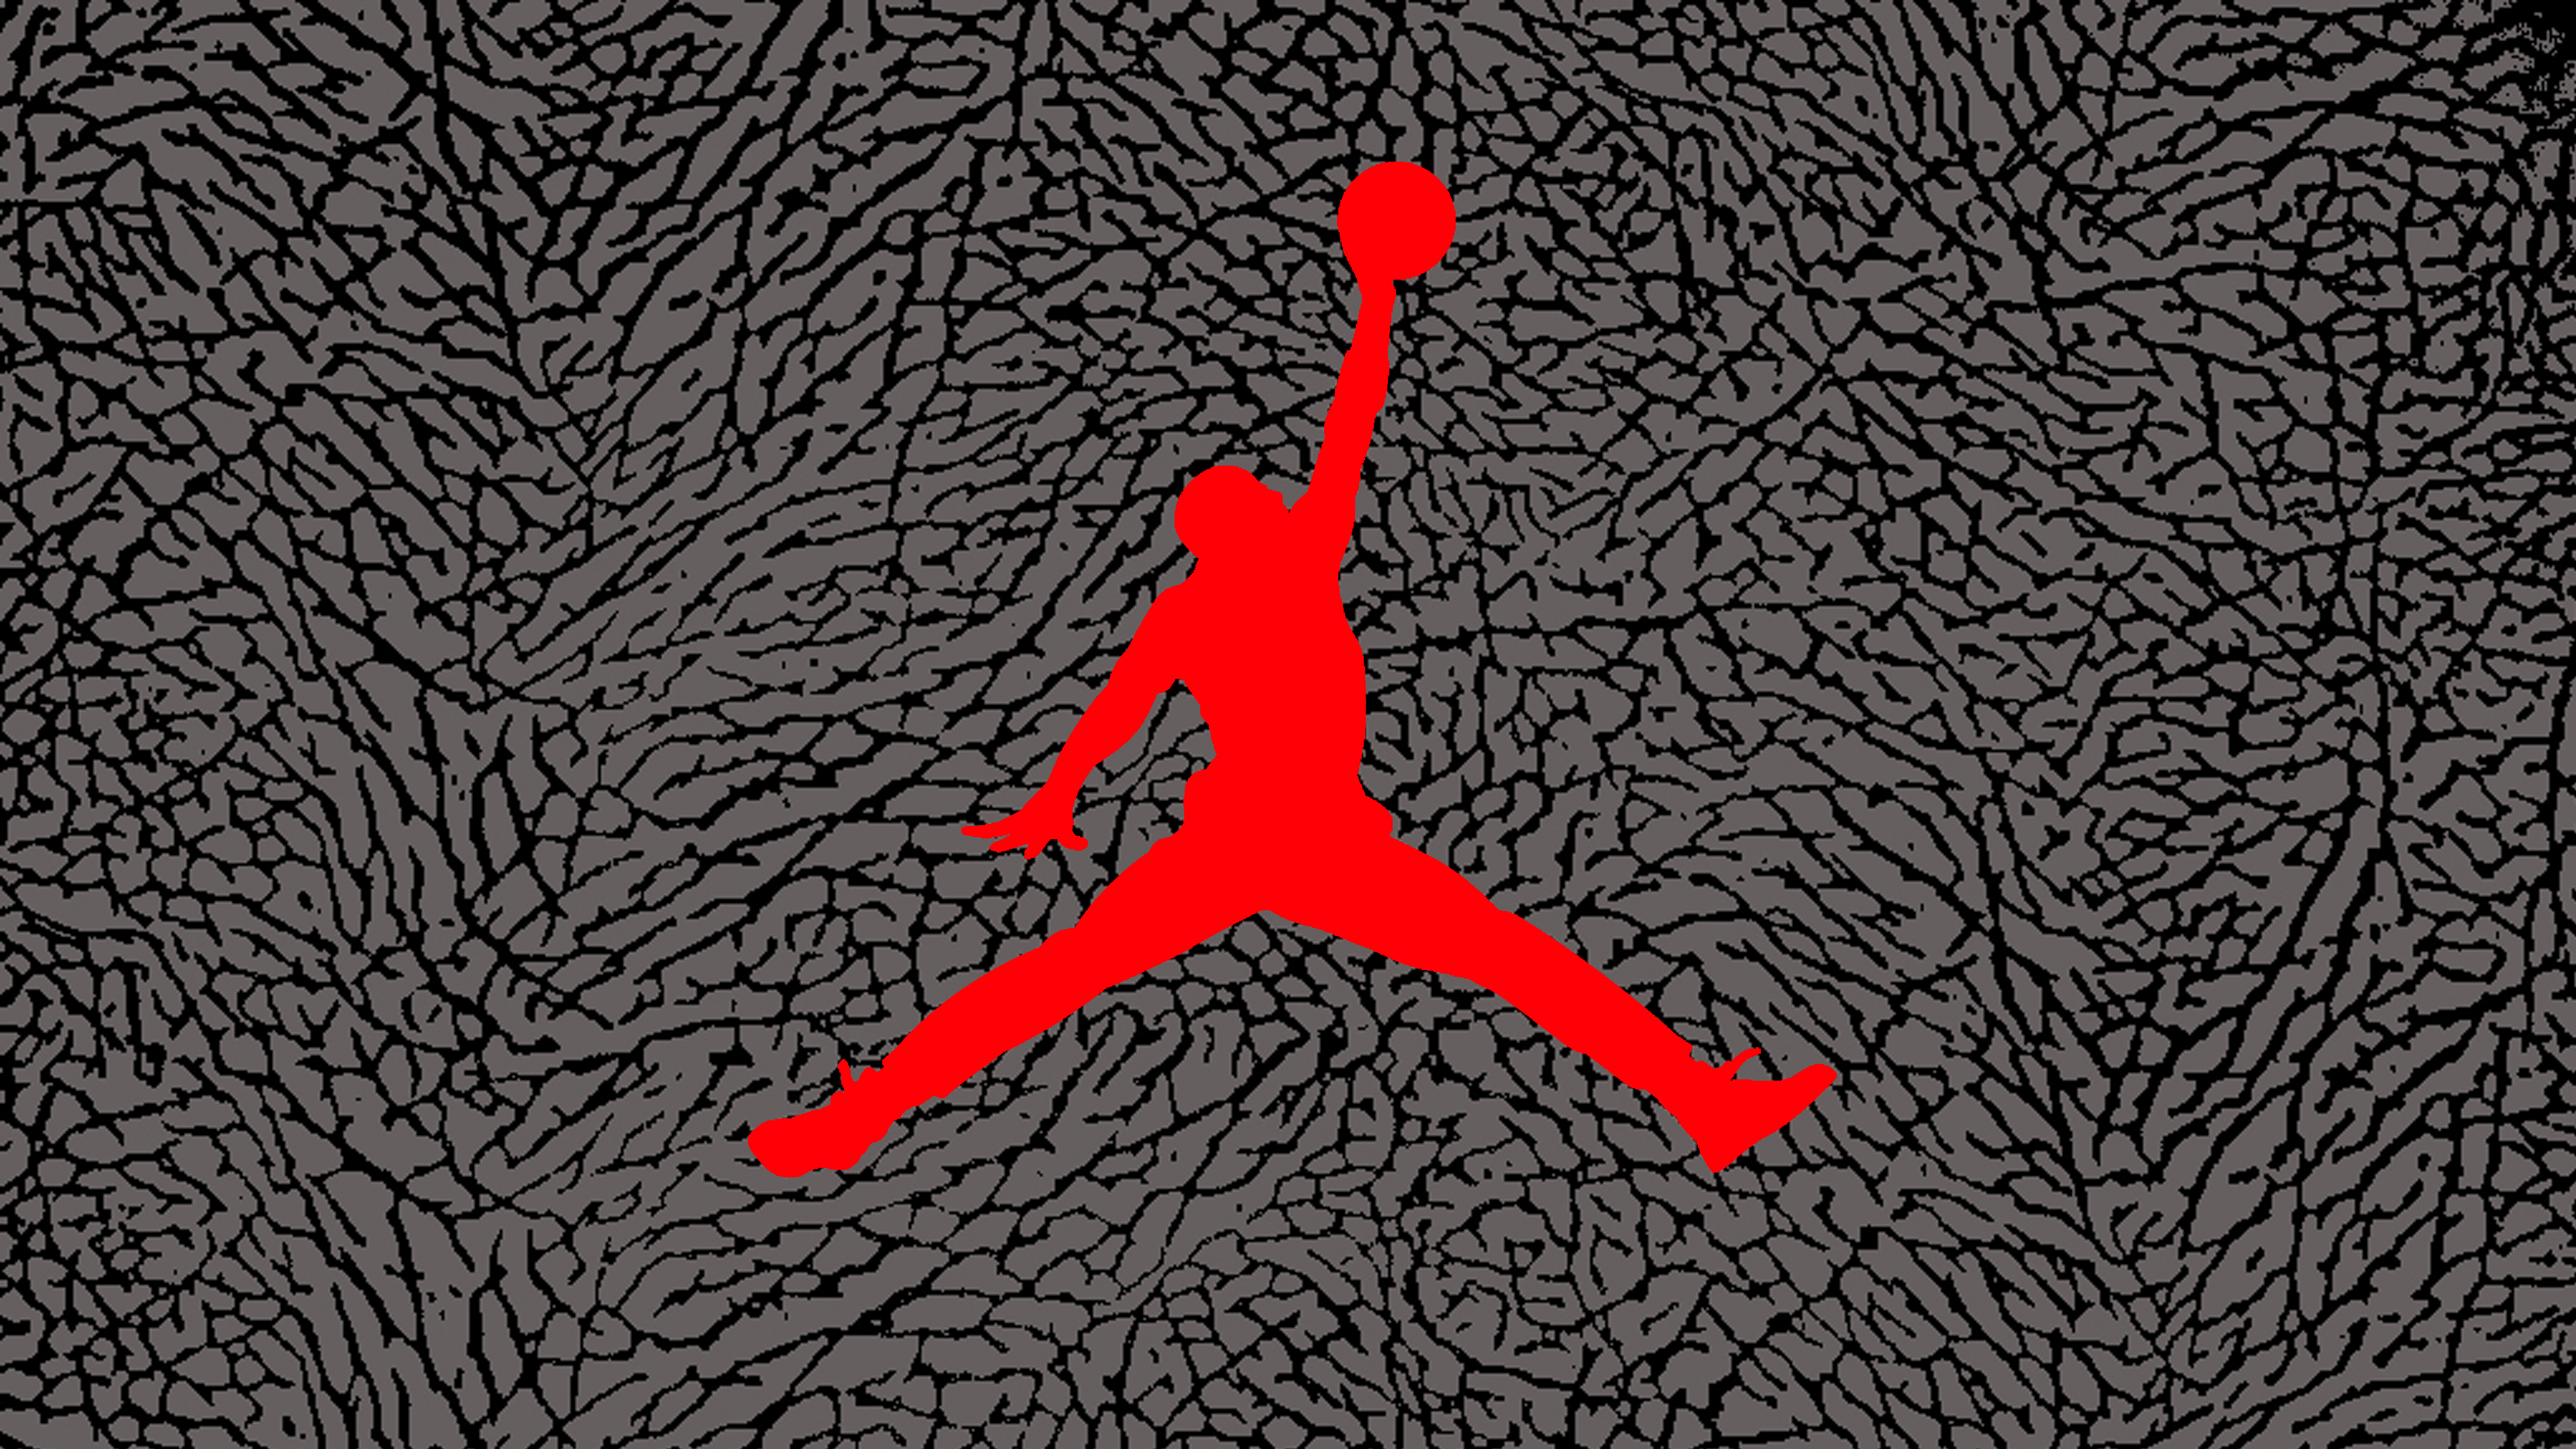 jumpman logo wallpaper mash - photo #6